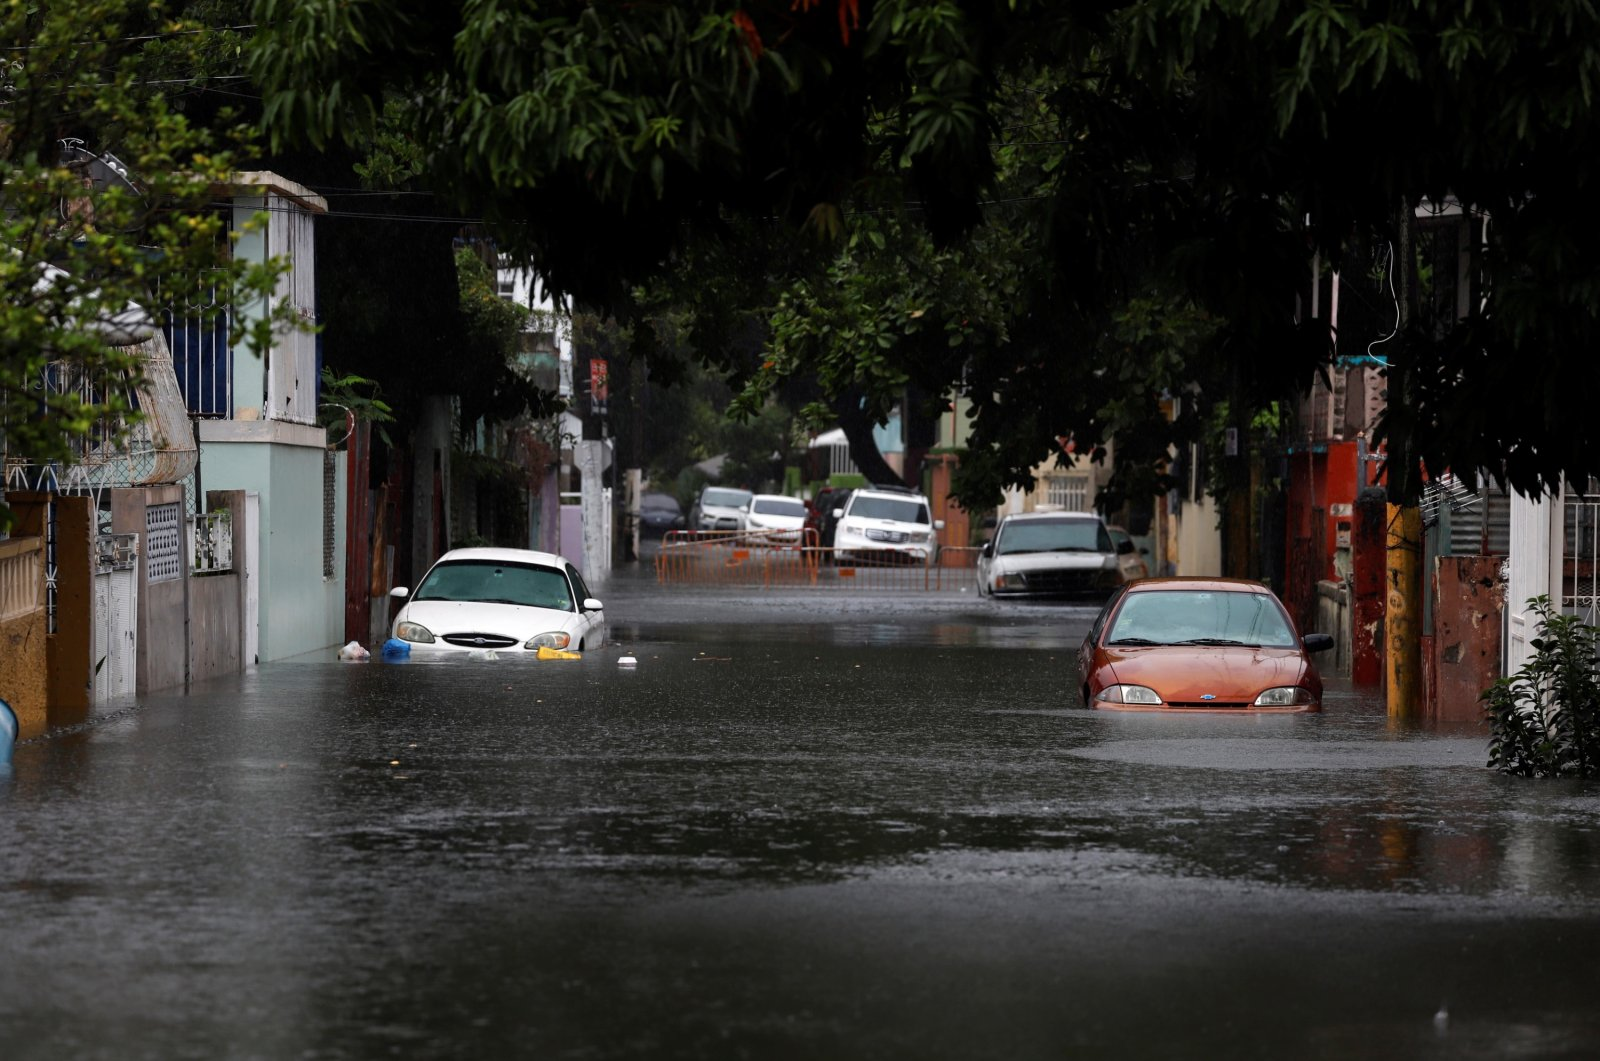 View of a flooded street in the aftermath of Hurricane Isaias, in San Juan, Puerto Rico, July 30, 2020. (EPA Photo)